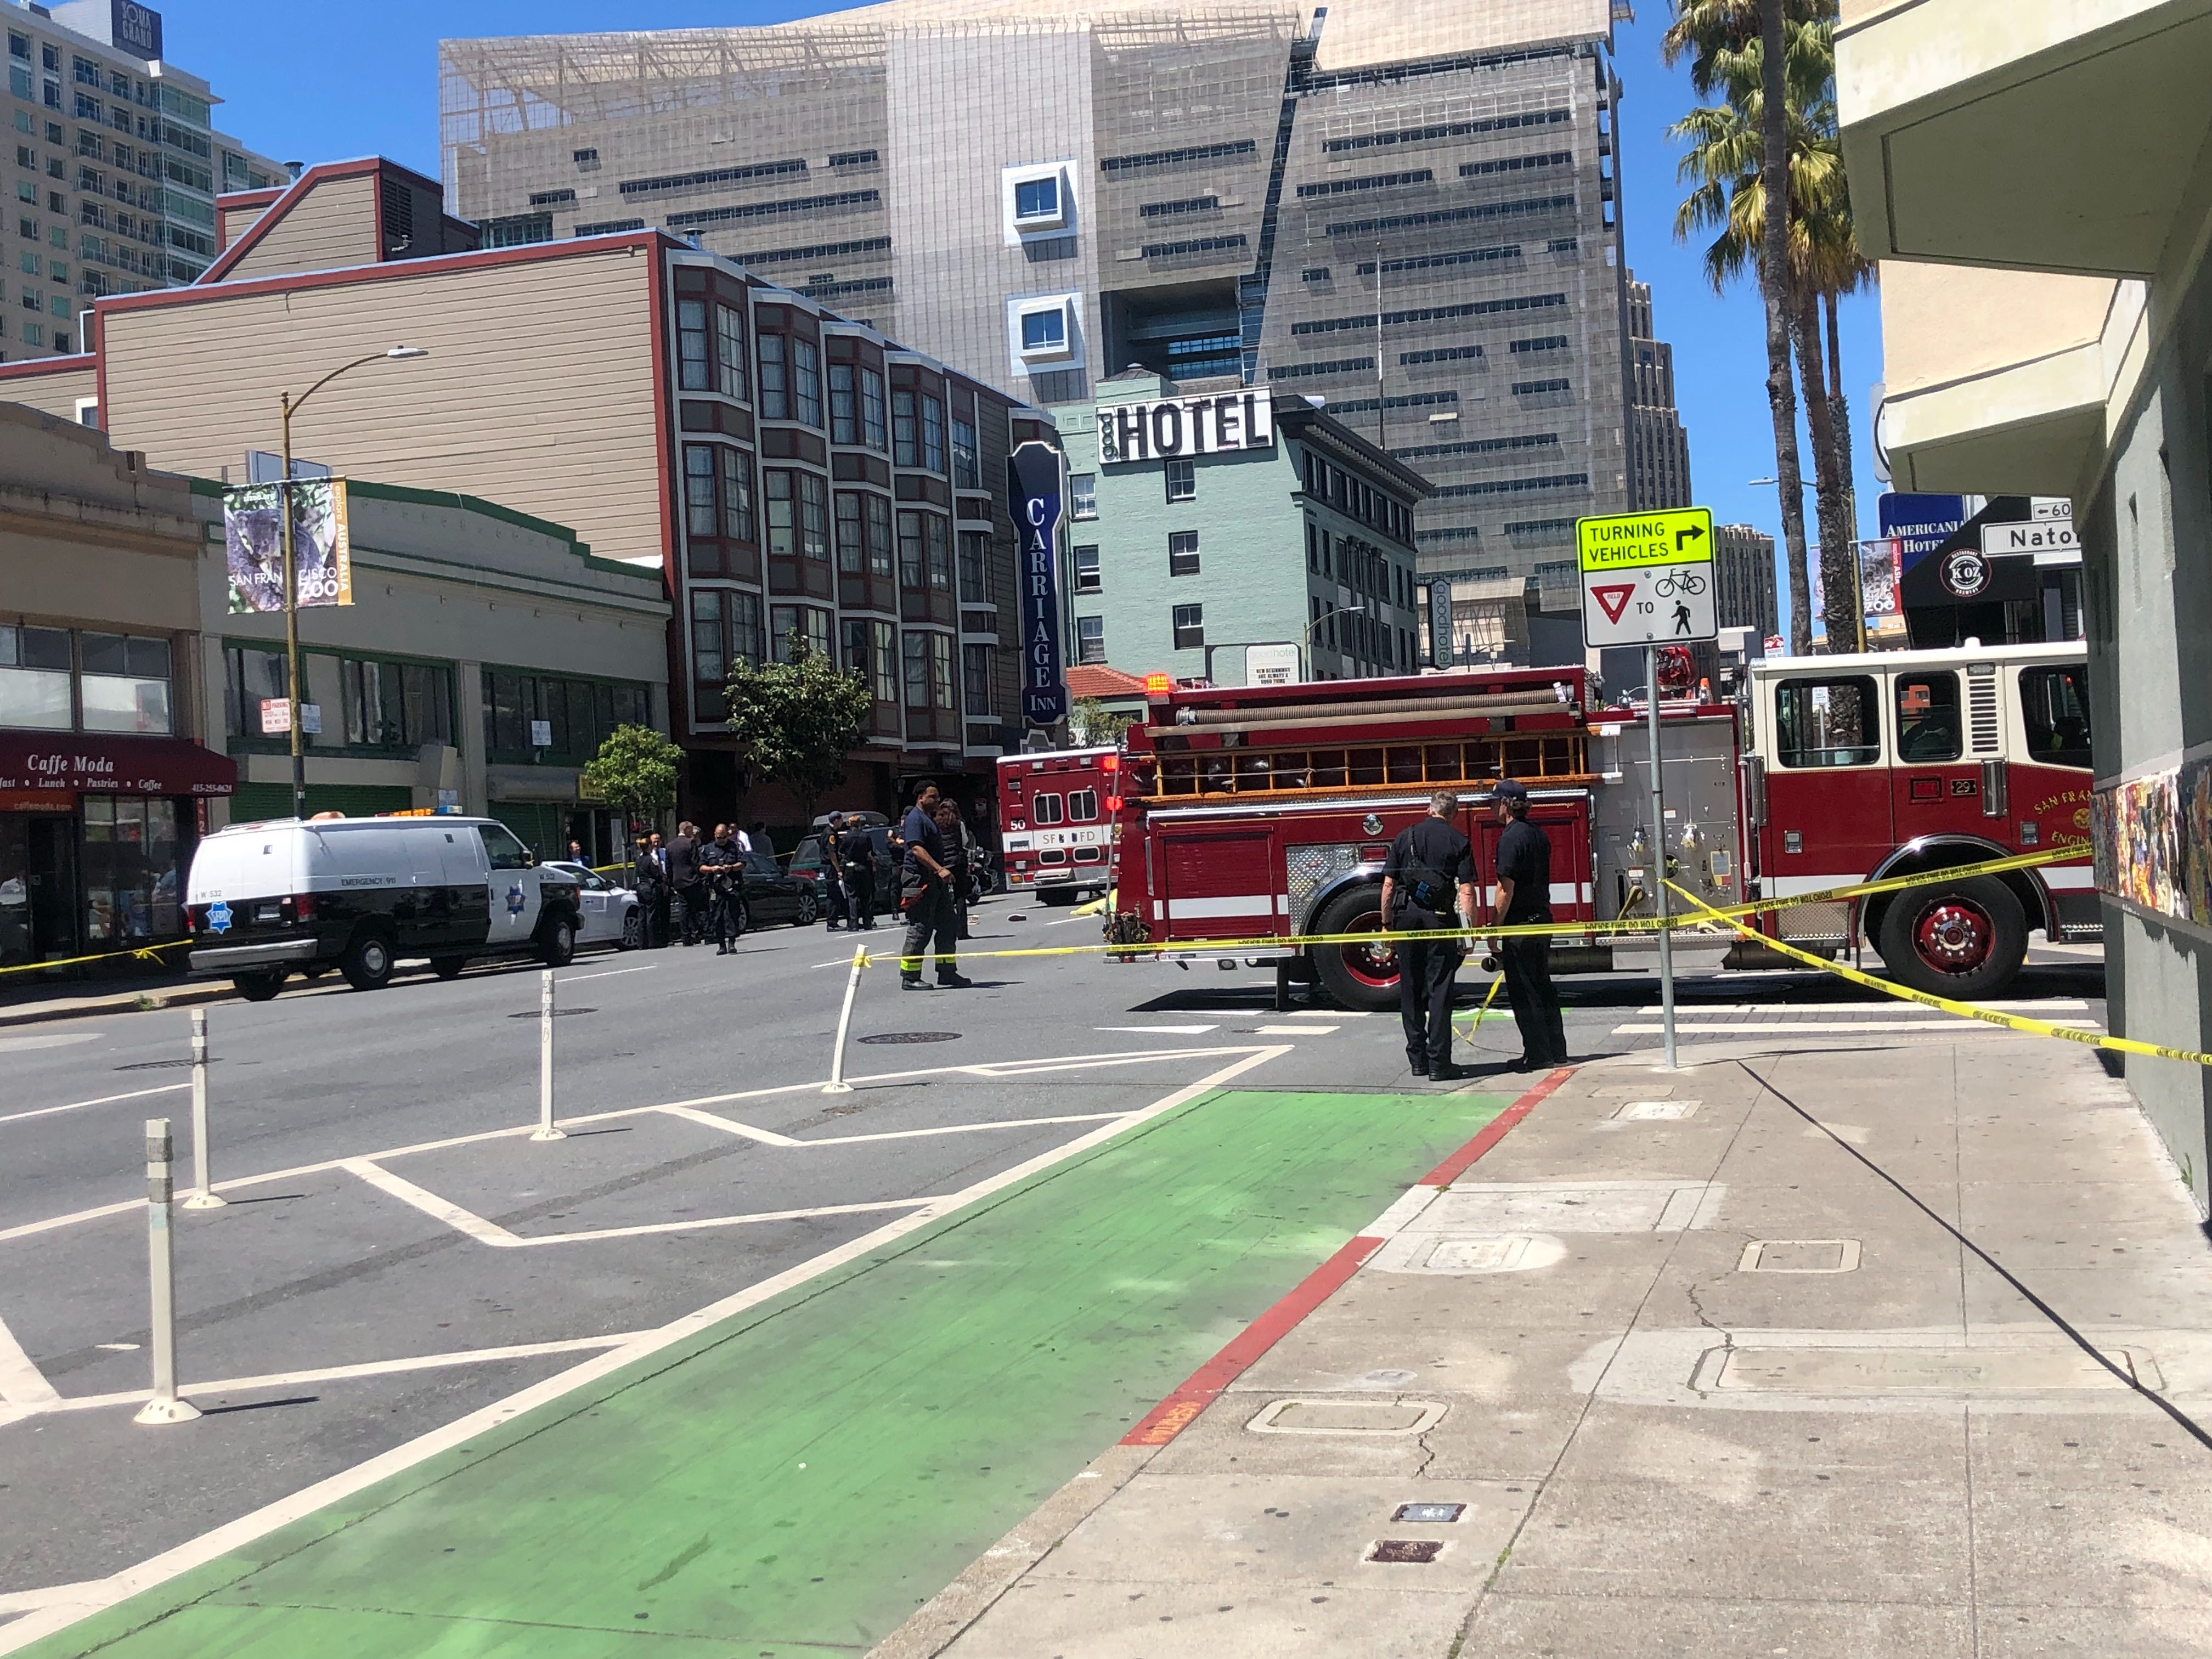 26-year-old skateboarder struck and killed at 7th & Mission